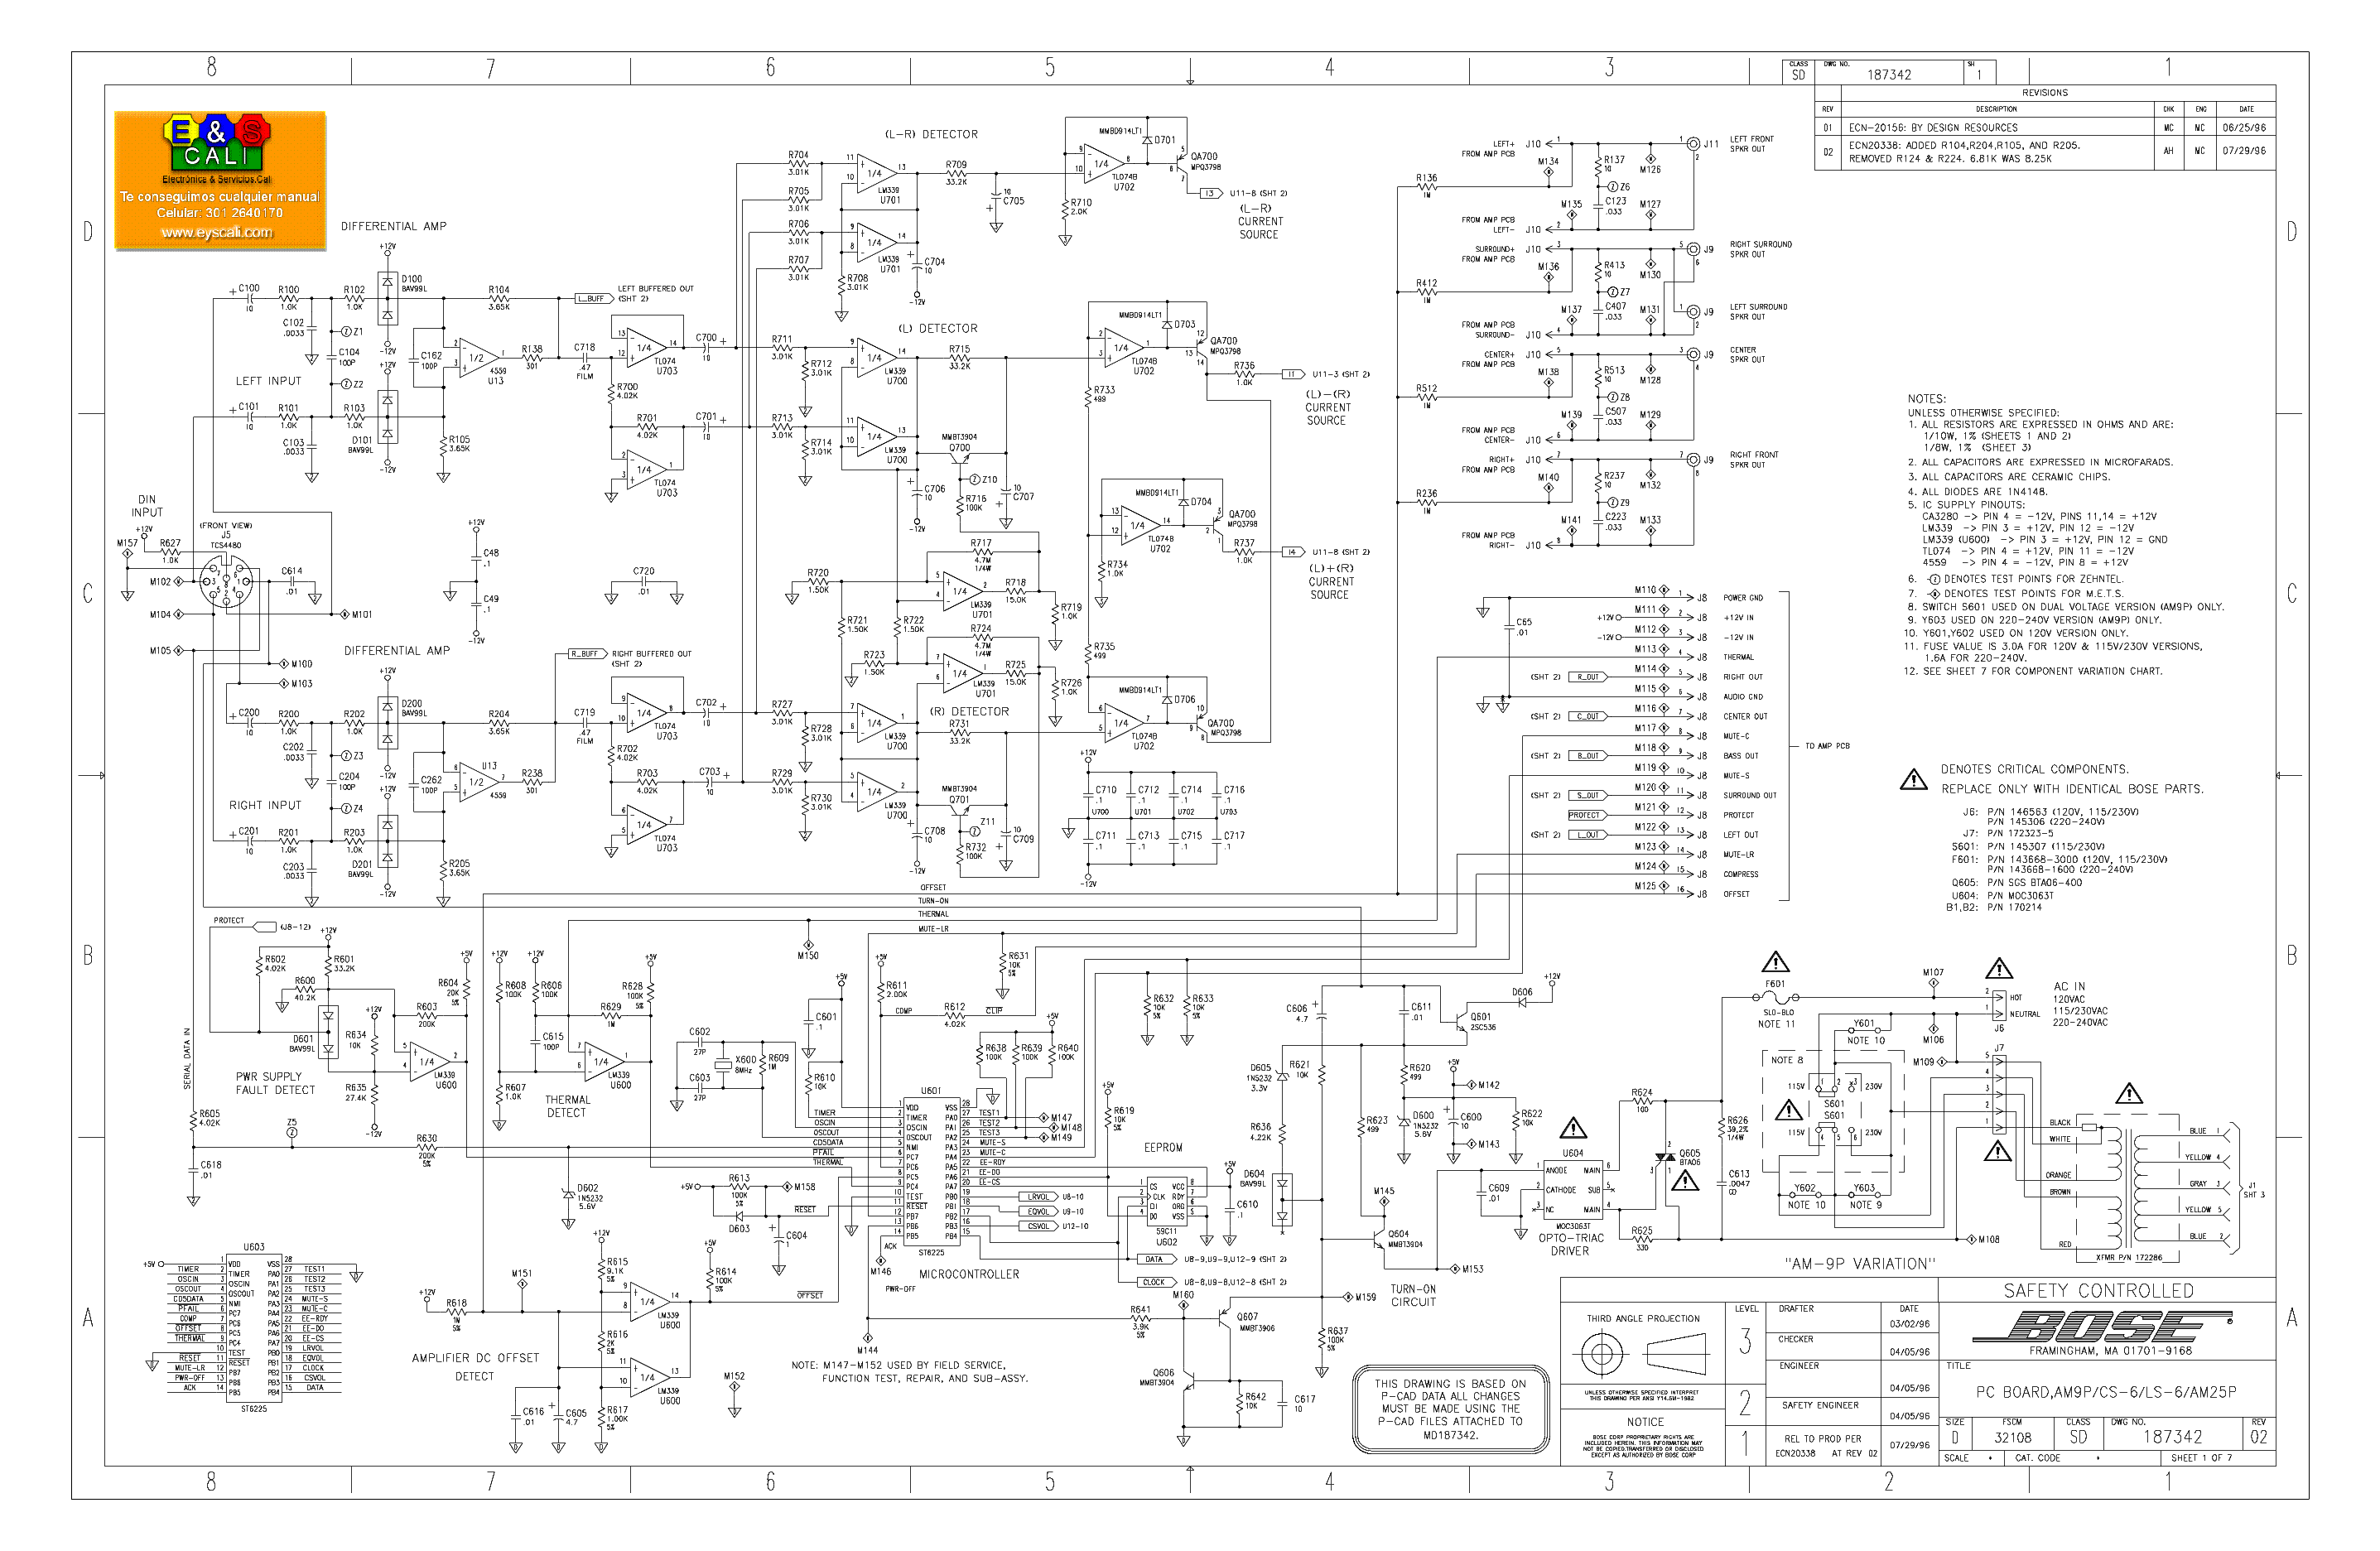 Bose 901 Series 4 Equalizer Schematic Wiring Diagrams Eq Diagram Iv 33 1 Old Speakers